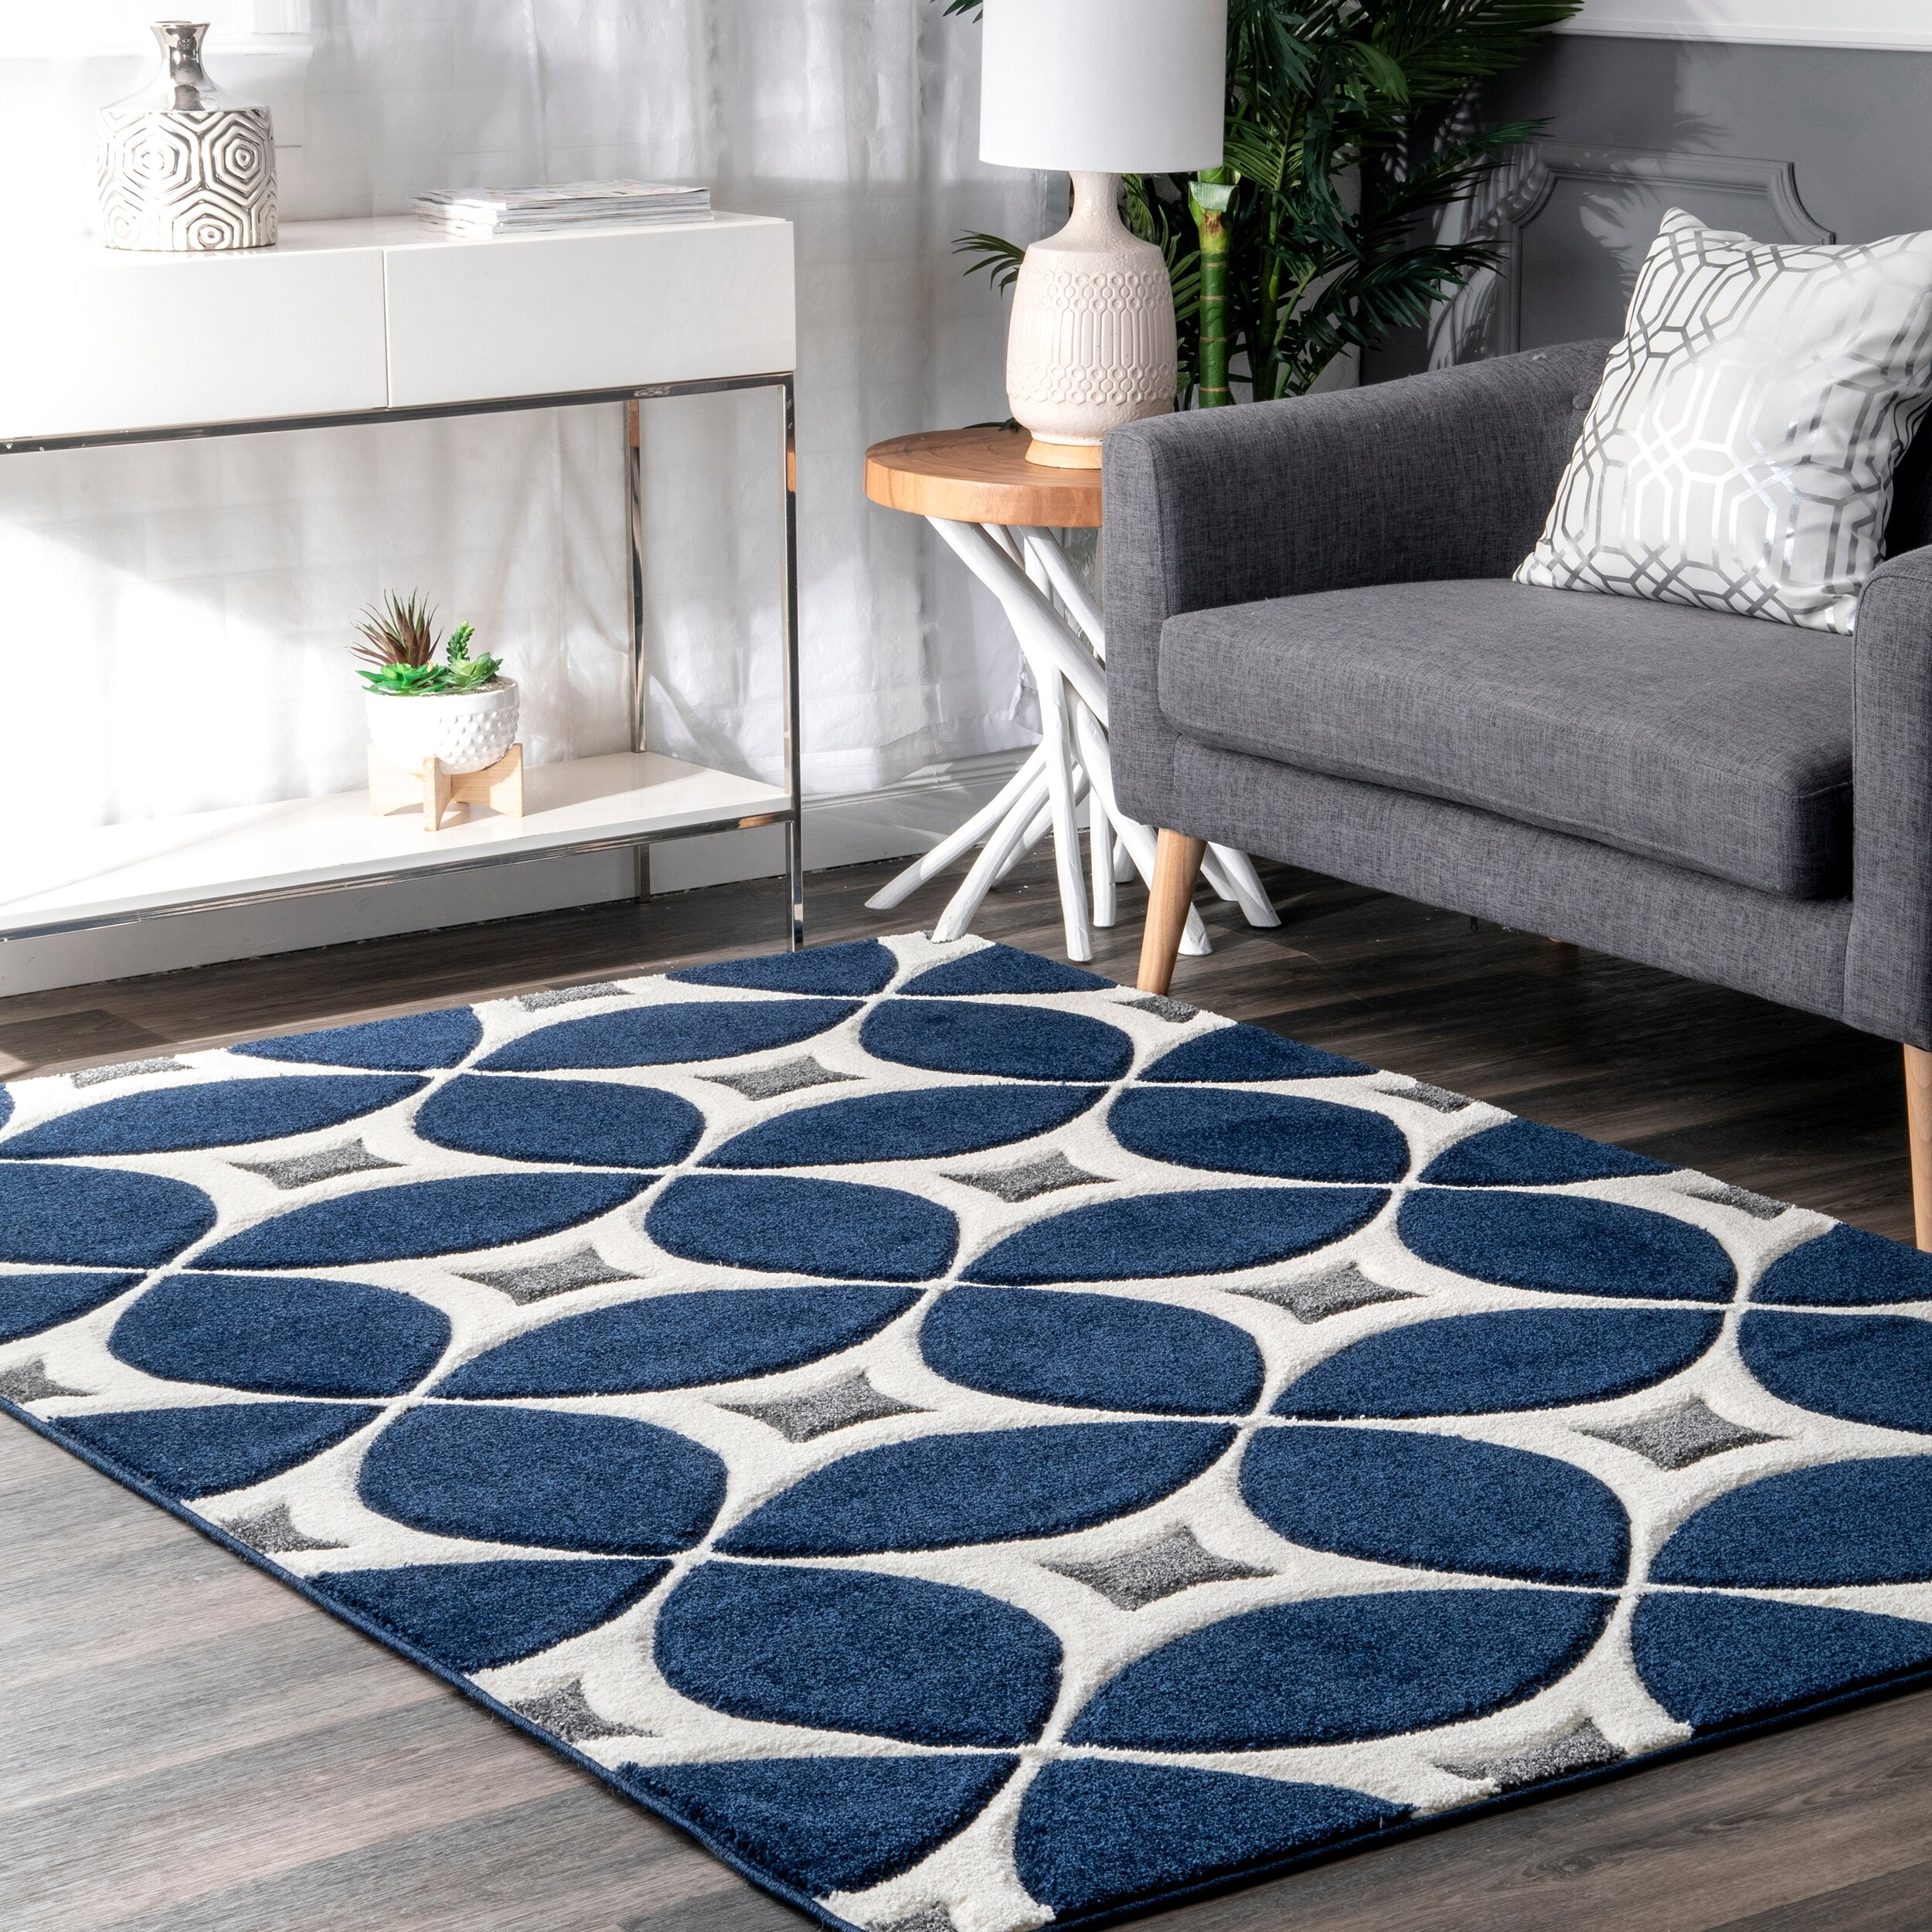 Navy Blue Geometric Rug Rugs Ideas